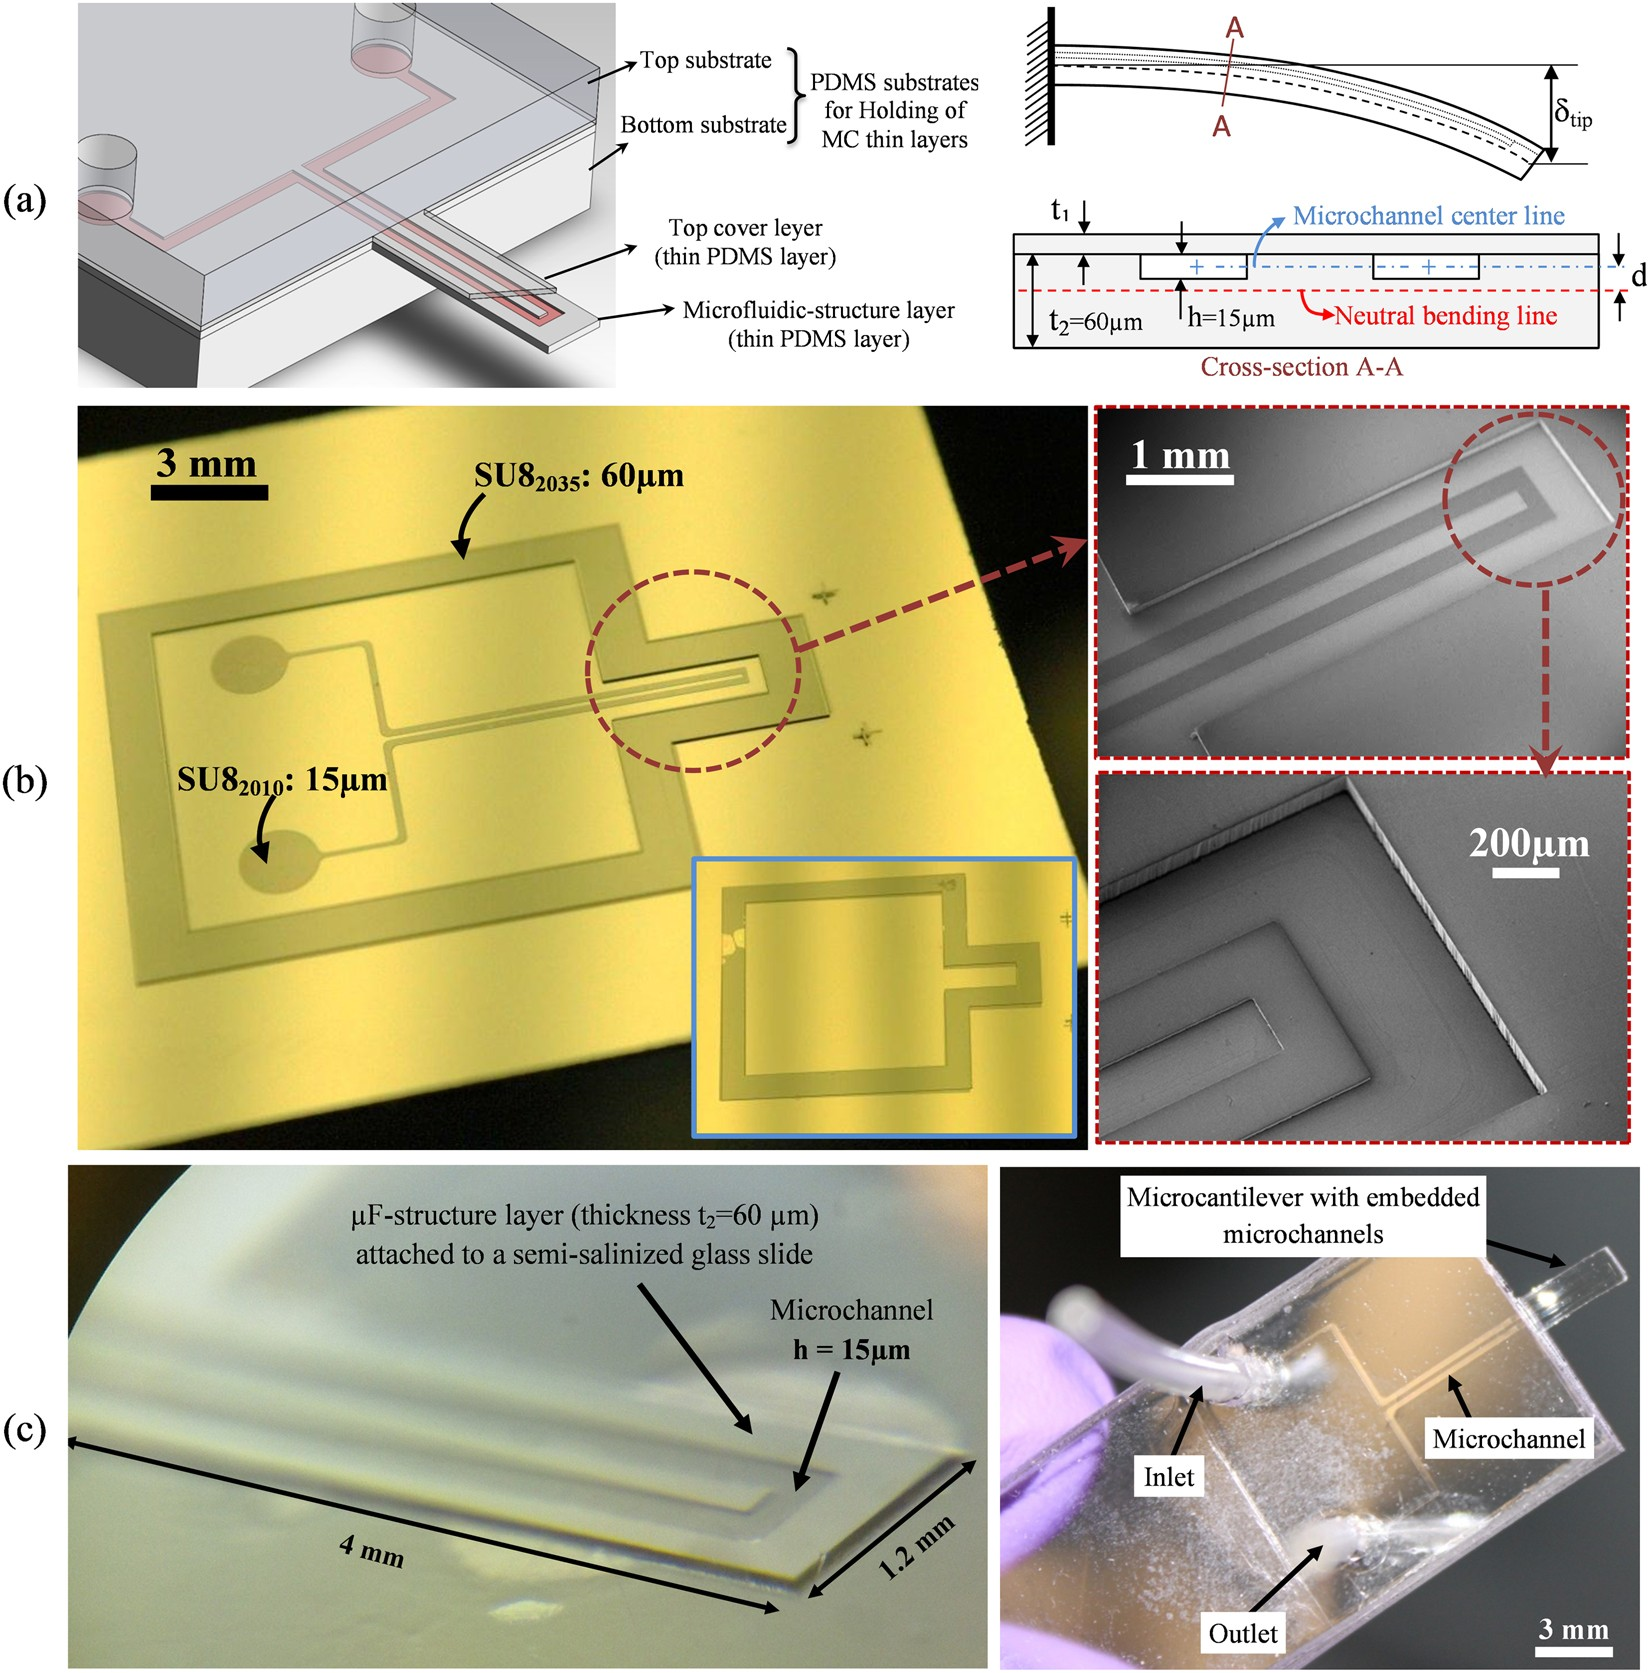 Nano Integrated Suspended Polymeric Microfluidics Spmf Platform Cantilever Beam Moment Diagram Coloring Pages For Ultra Sensitive Bio Molecular Recognition Of Bovine Growth Hormones Scientific